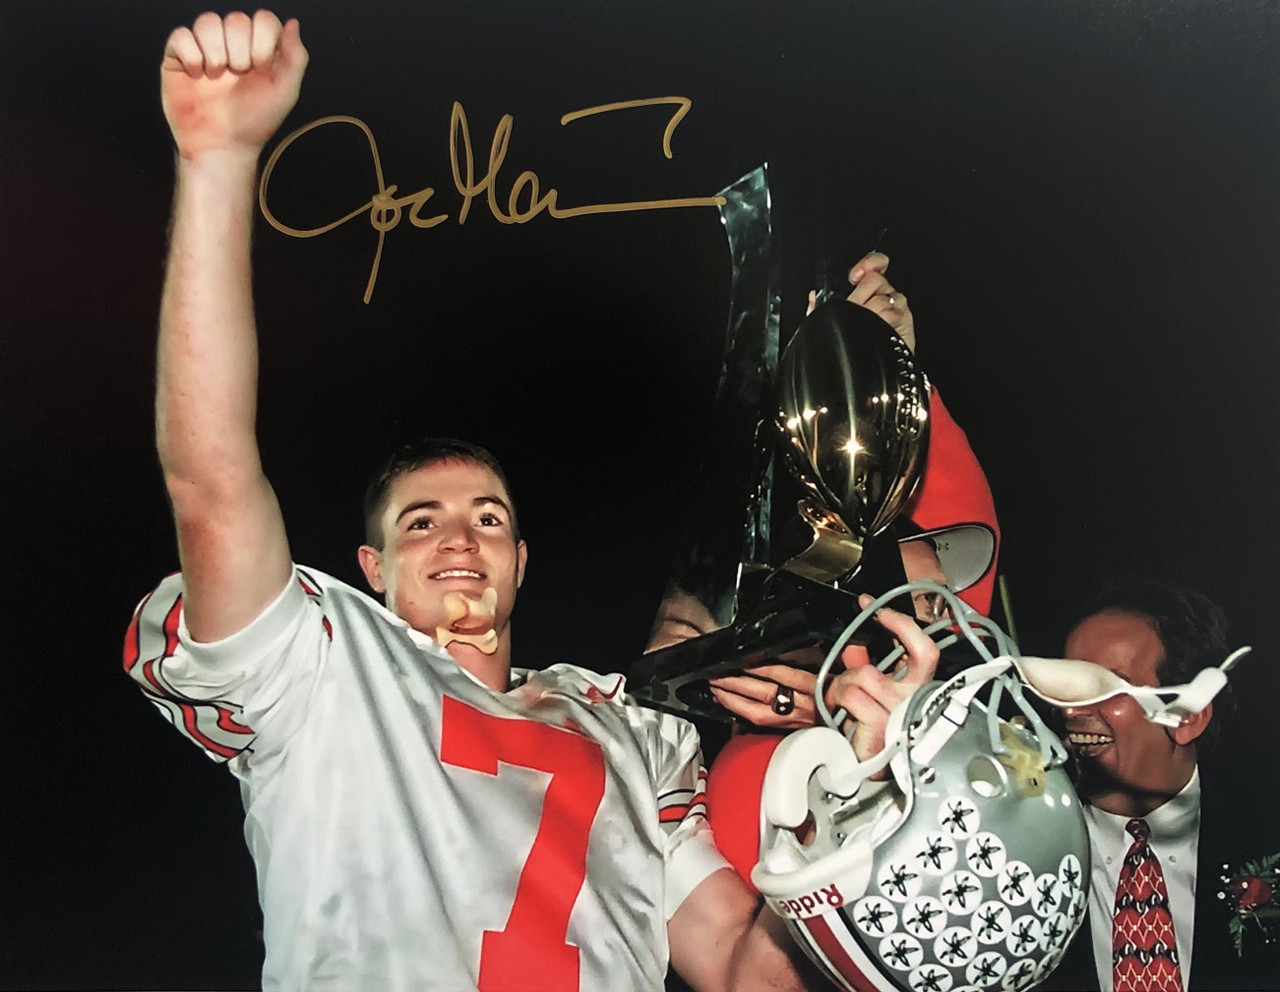 Joe Germaine OSU 11-1 11x14 Autographed Photo - Certified Authentic